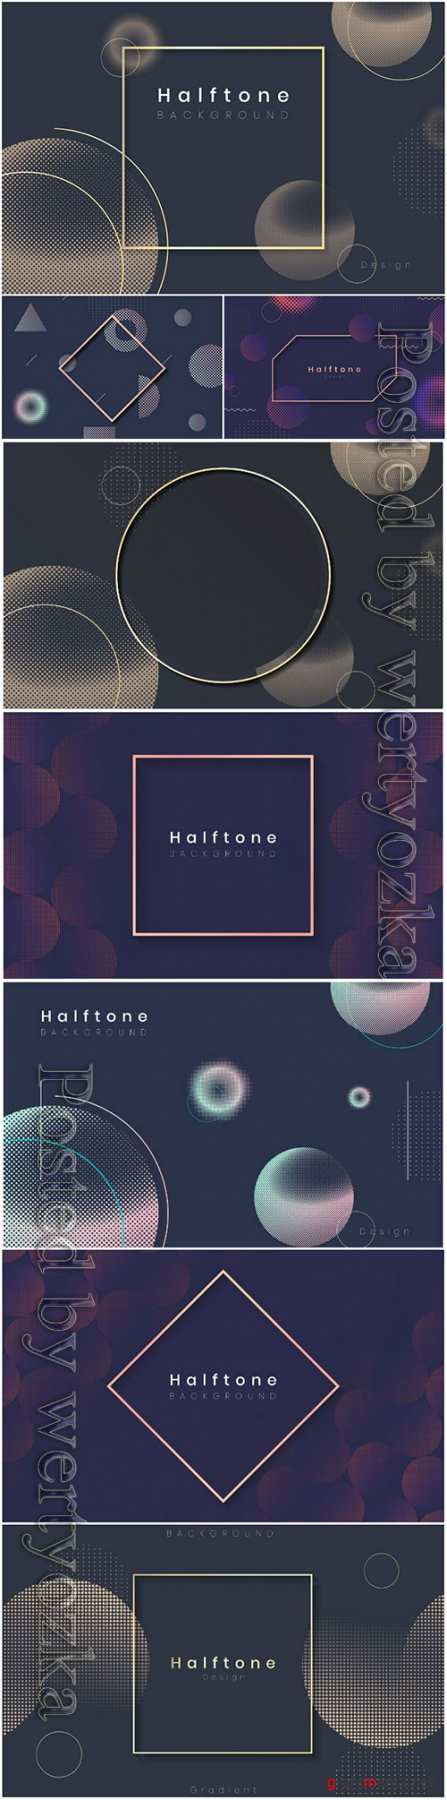 Halftone gradient vector background